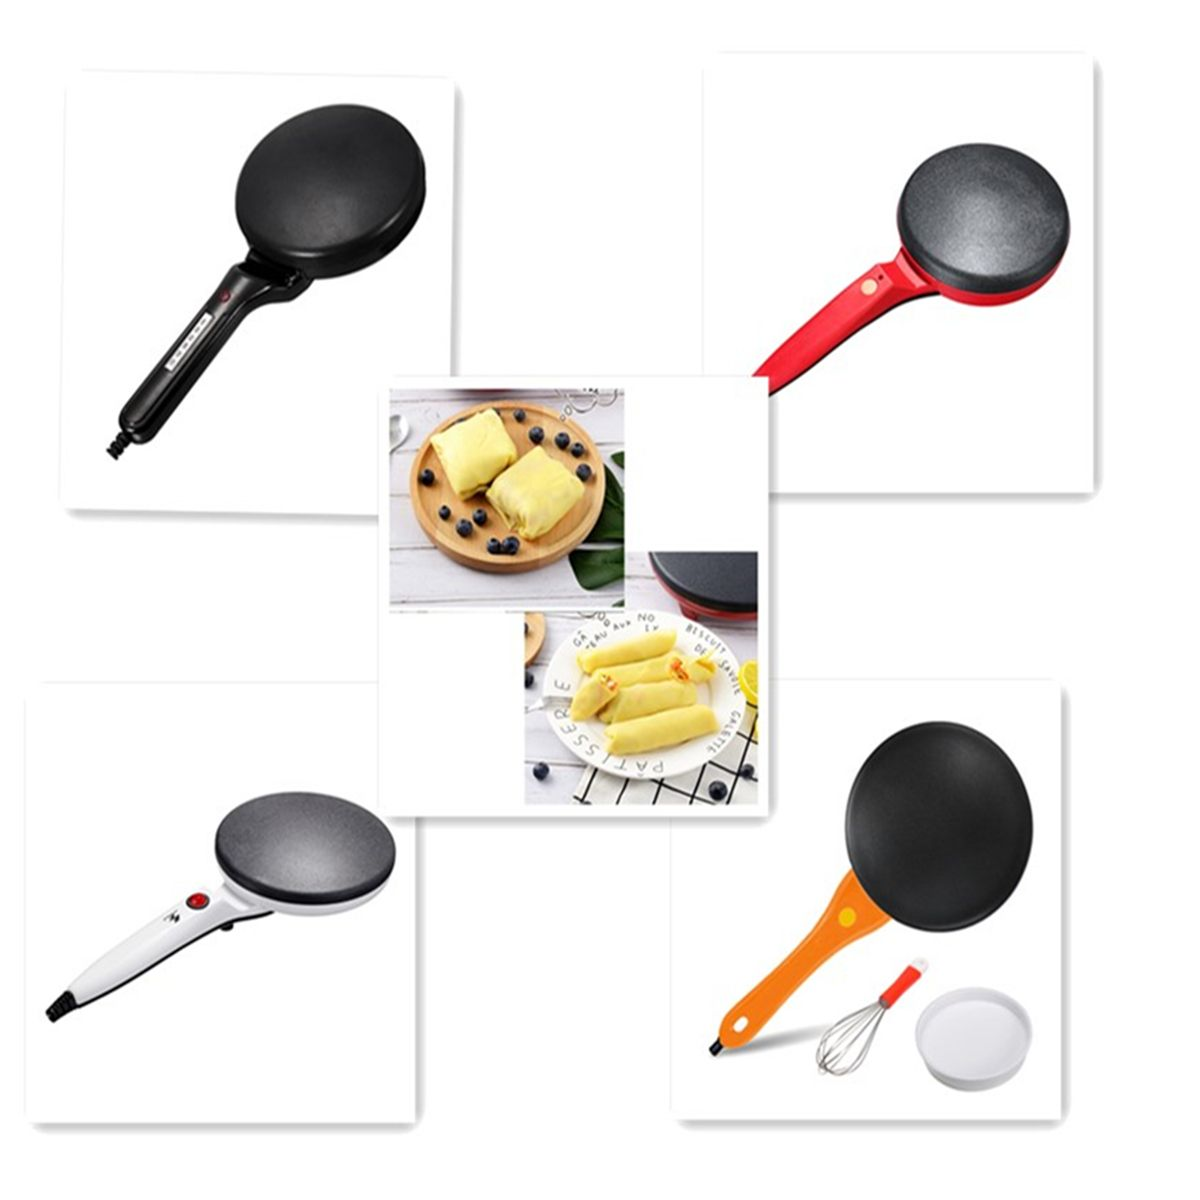 220V Non-stick <font><b>Electric</b></font> Crepe Pizza Maker Pancake Machine Non-stick Griddle <font><b>Baking</b></font> <font><b>Pan</b></font> Cake Machine Kitchen Cooking Tools Crepe image